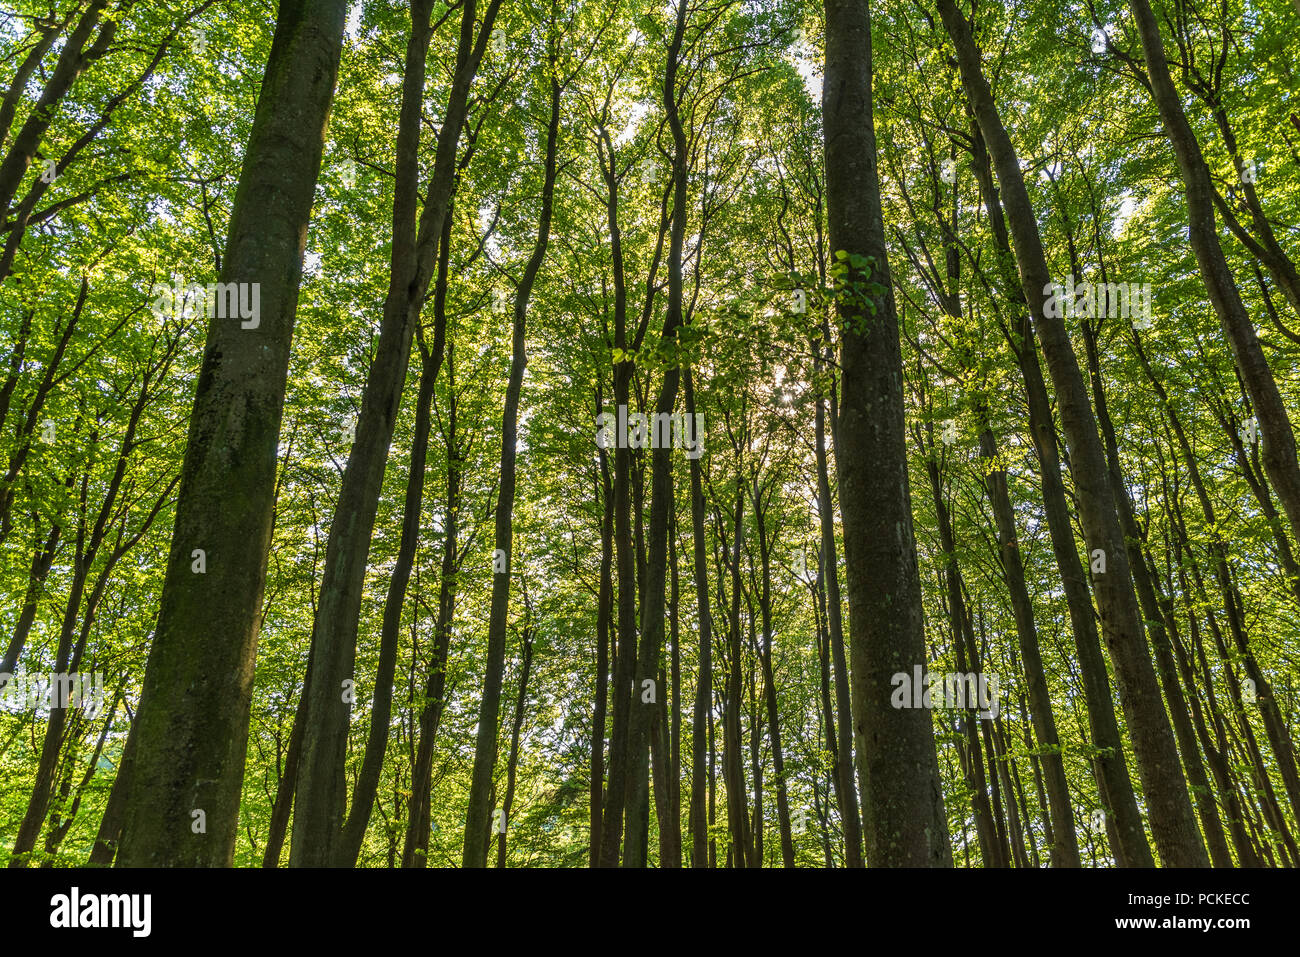 In the depths of the wood. - Stock Image